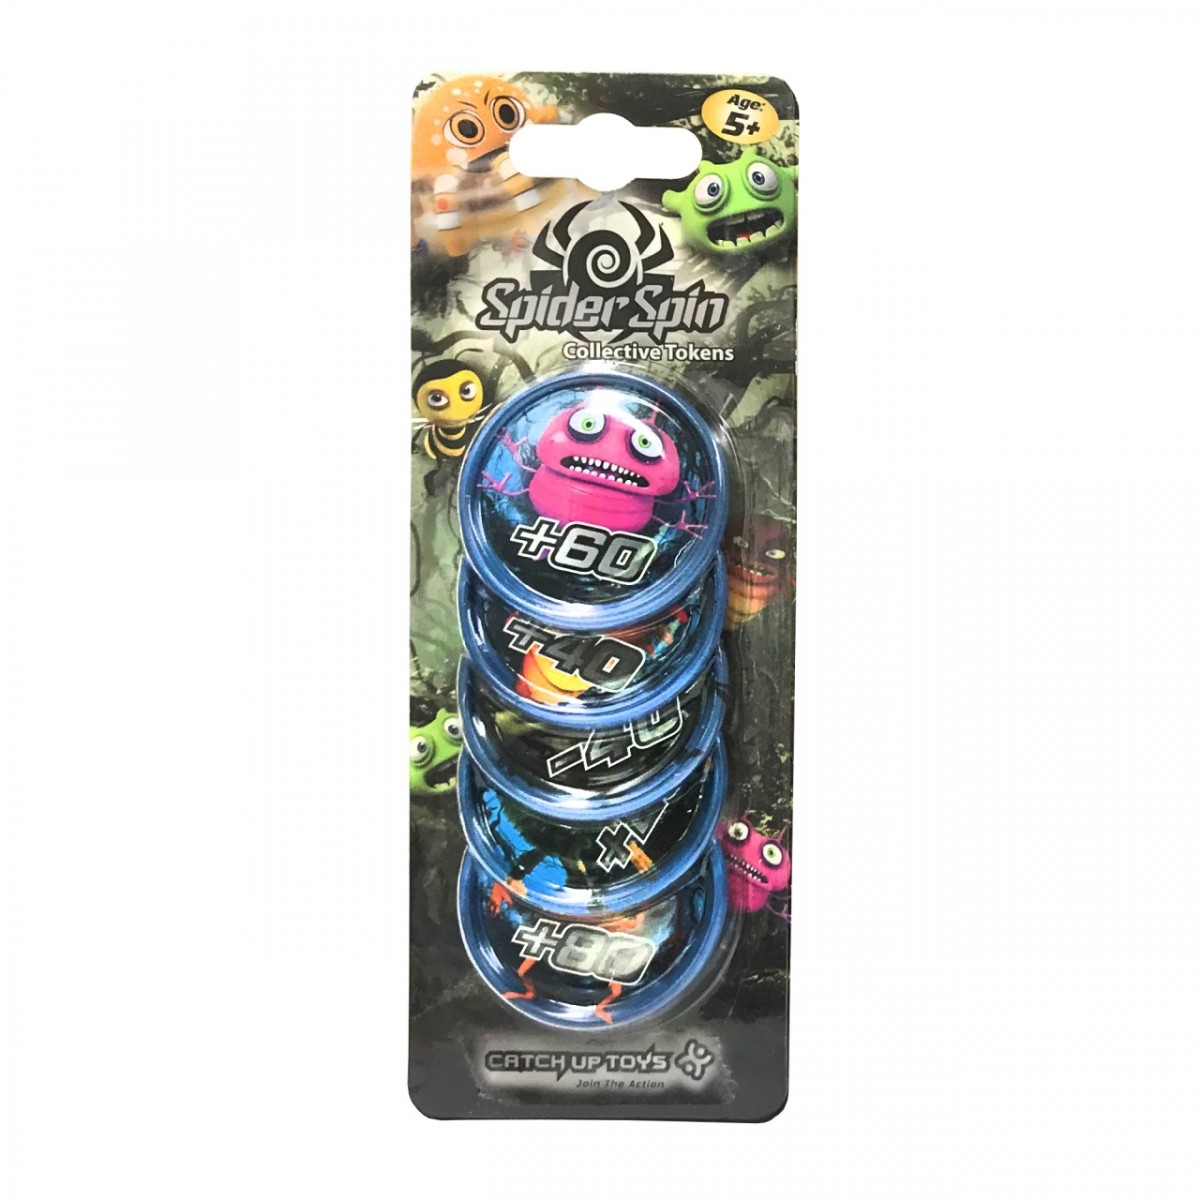 Жетоны CATCHUP TOYS SS-002T-BLU Spider Spin. Collective Tokens (Blue)